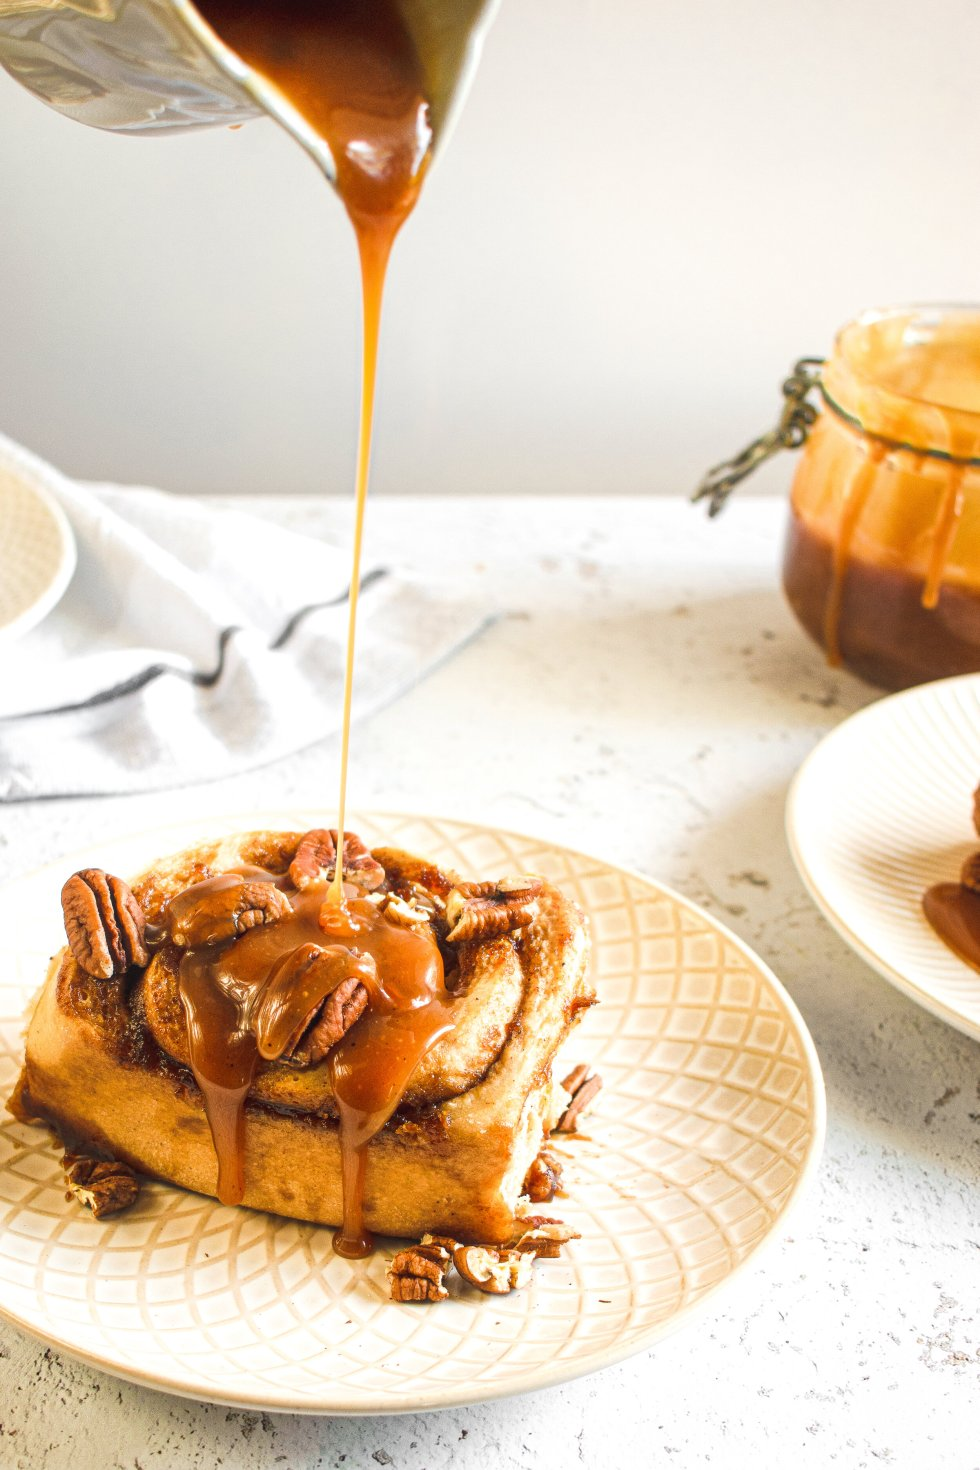 Apple butter cinnamon roll with apple cider caramel being drizzled on top